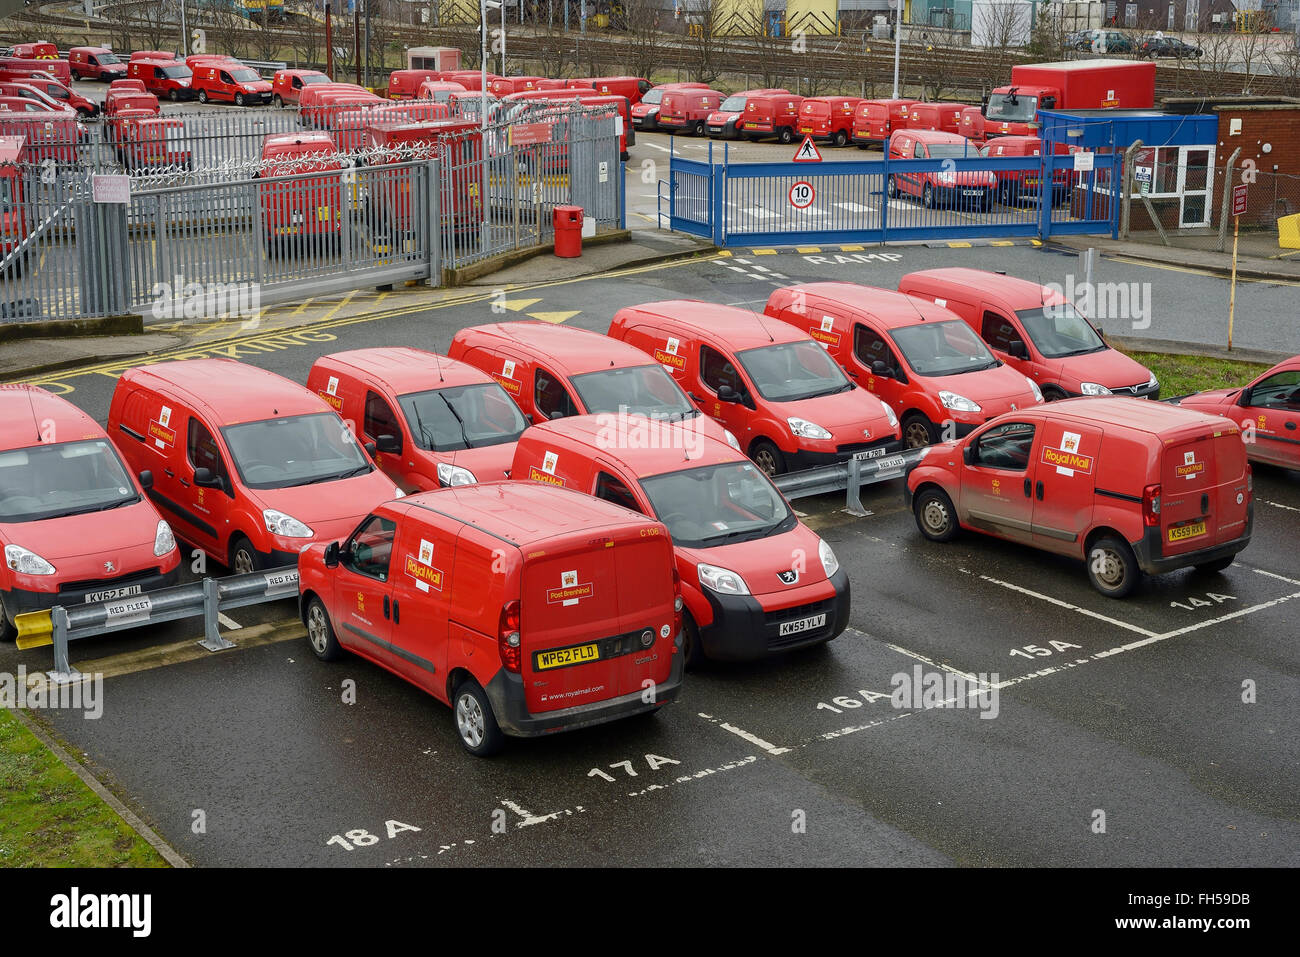 Red Royal Mail delivery vans parked in a sorting office car park - Stock Image